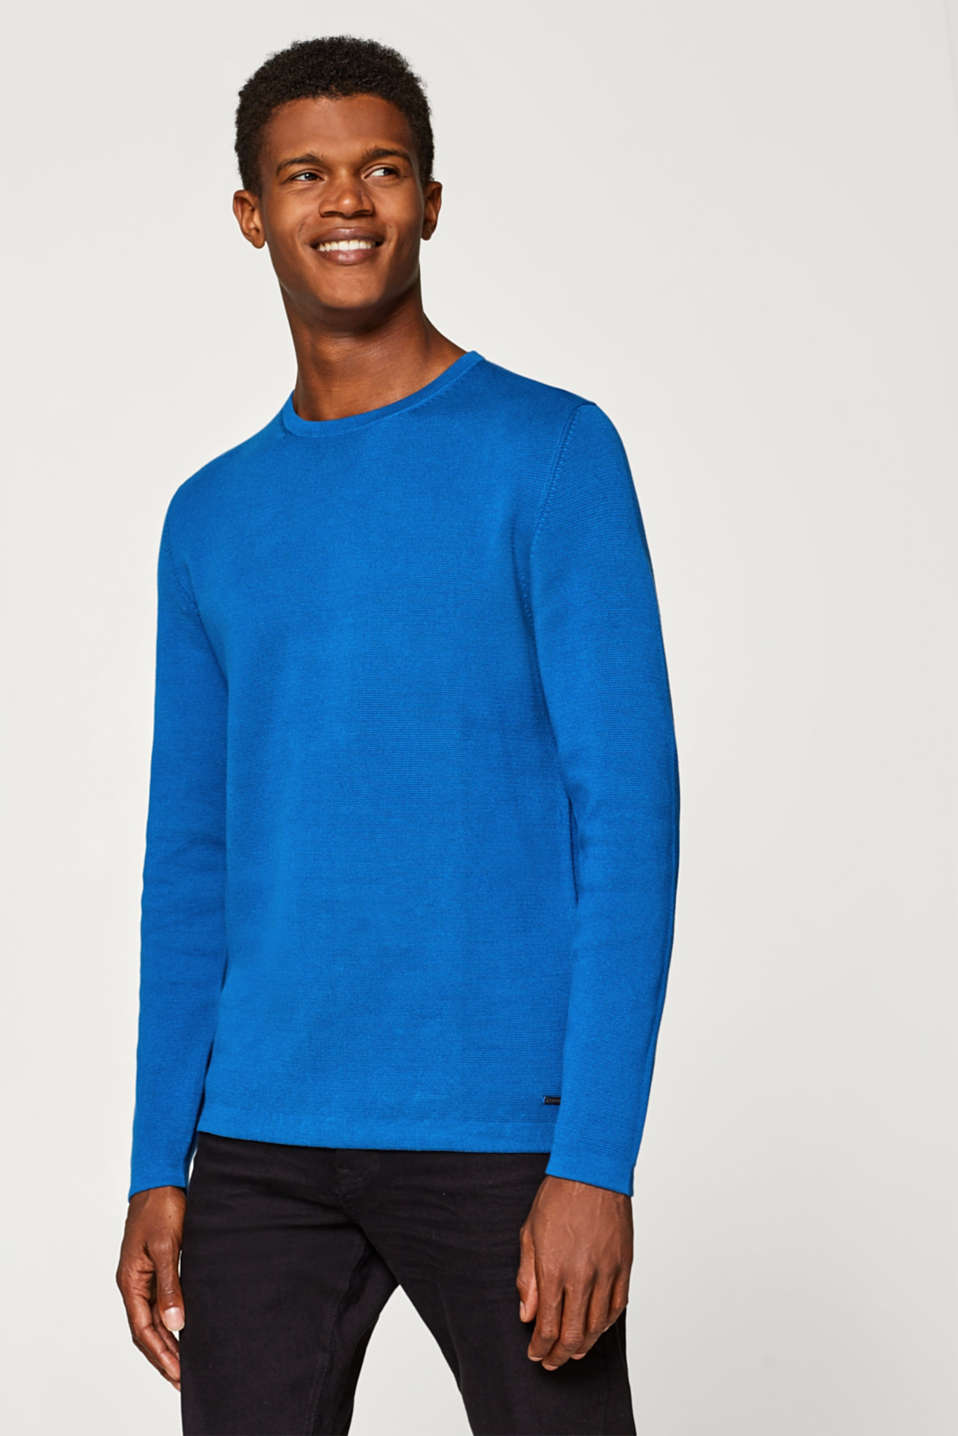 Esprit - Jumper with a Milano texture, 100% cotton